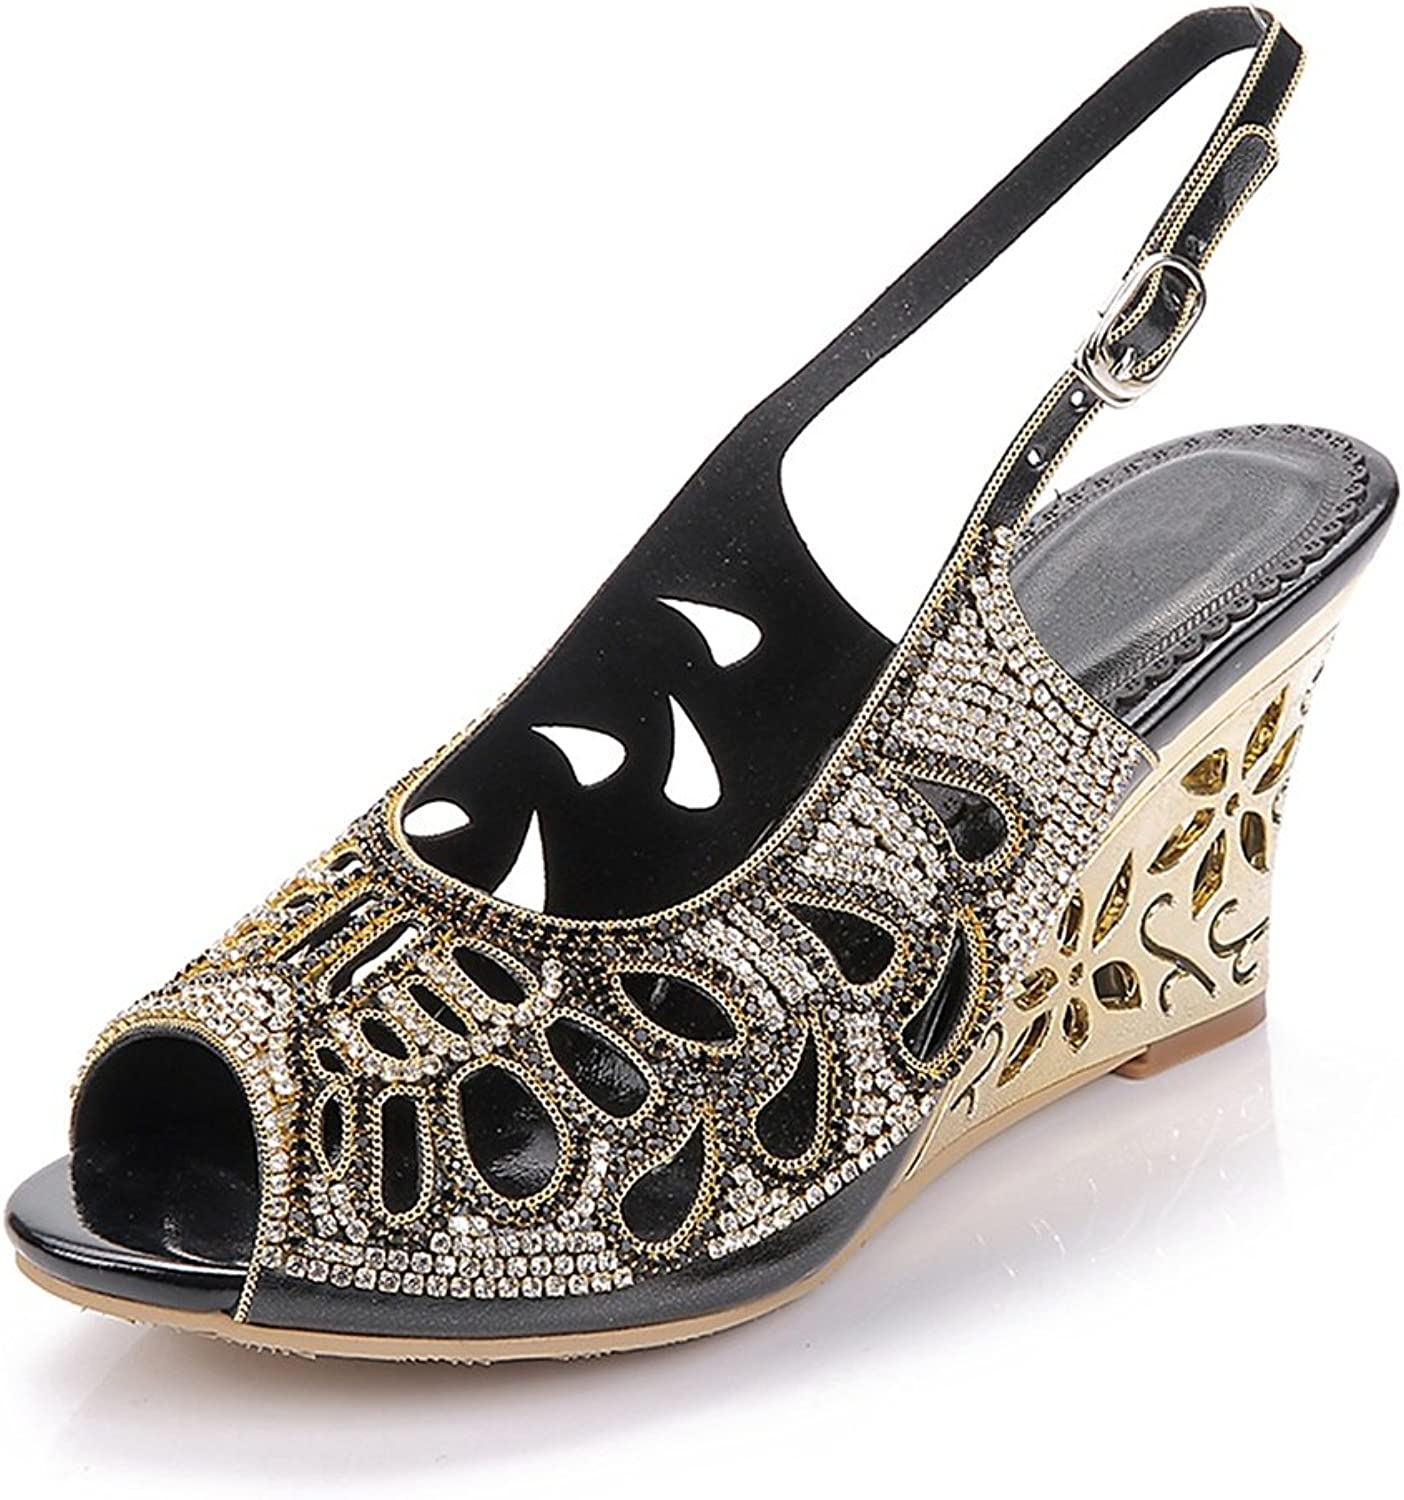 Womens Ankle Strap Wedge Heel Sandals Ladies Diamante Dress Wedding Prom Party shoes Size